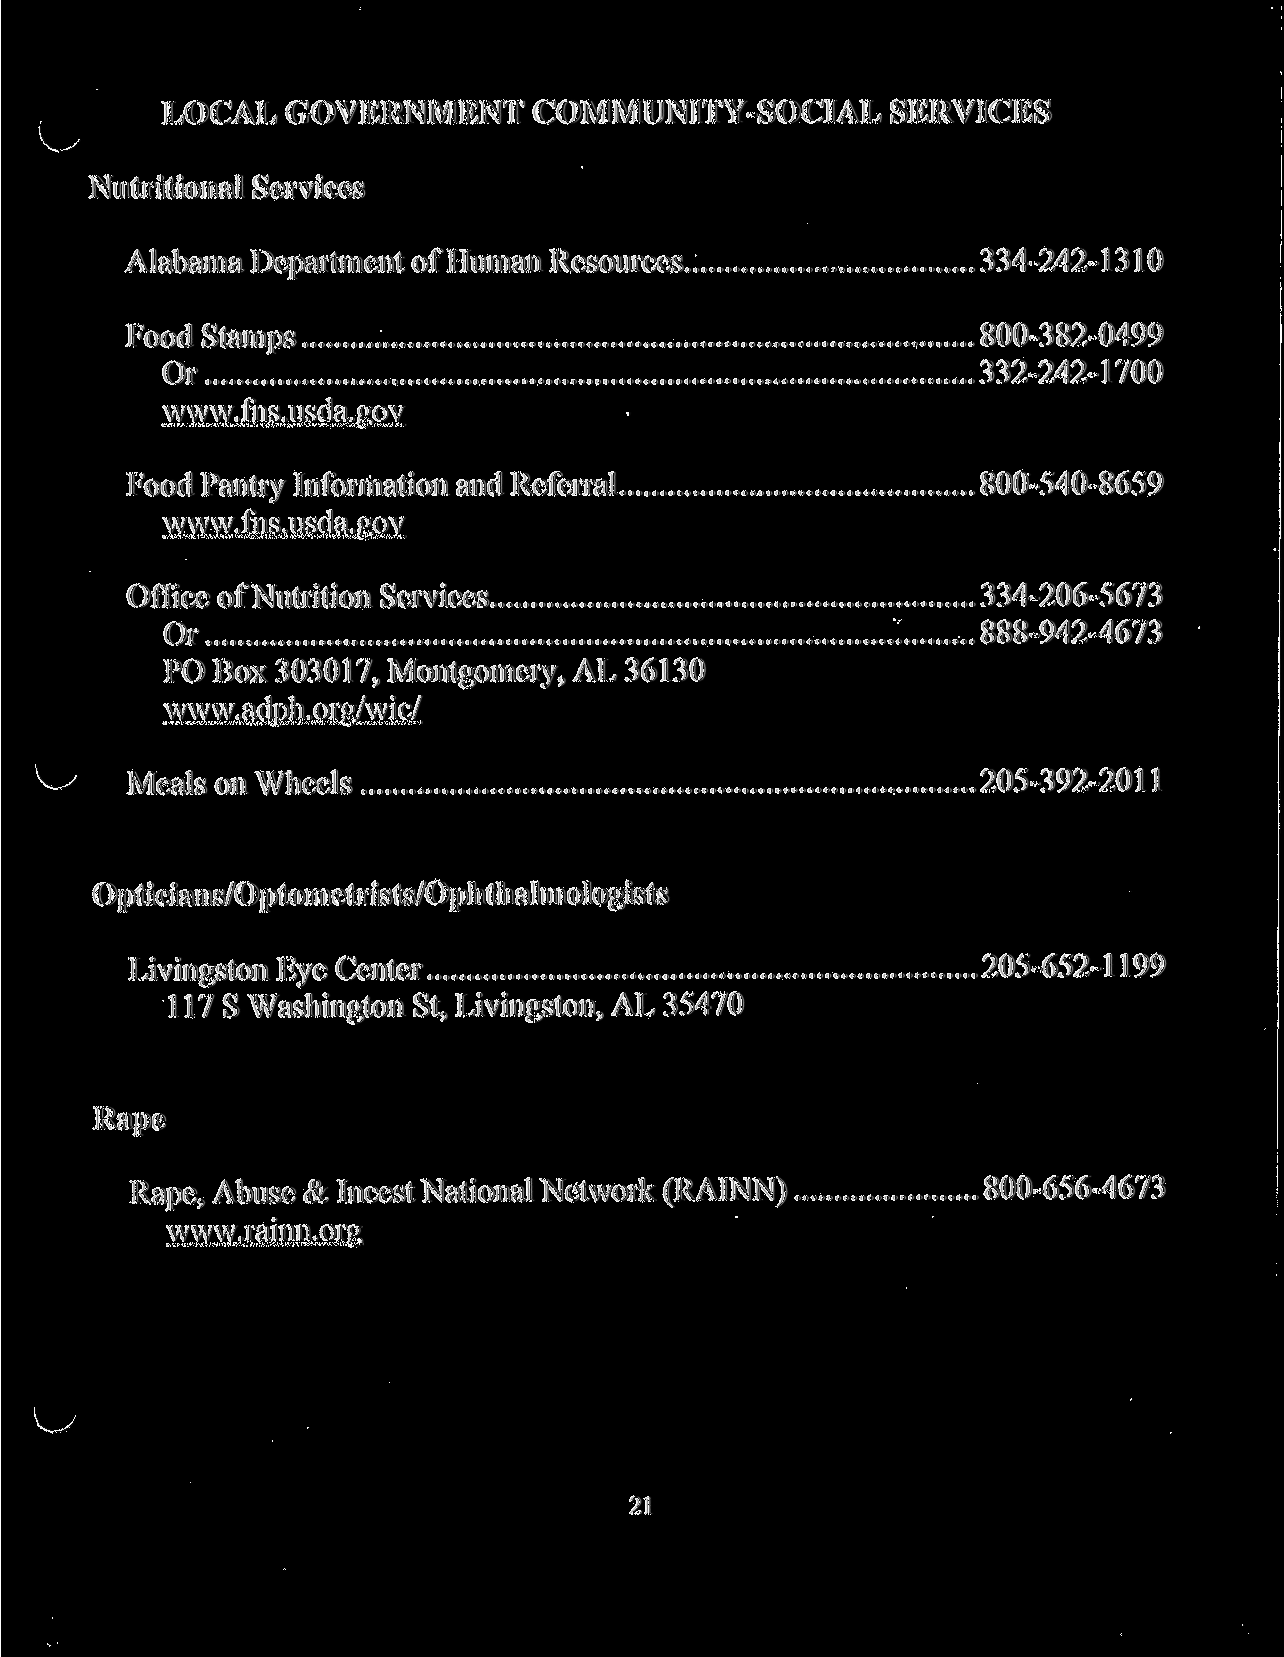 LOCAL GOVERNMENT COMMUNITY SOCIAL SERVICES Nutritional Services Alabama Department Of Human Resources 334 242